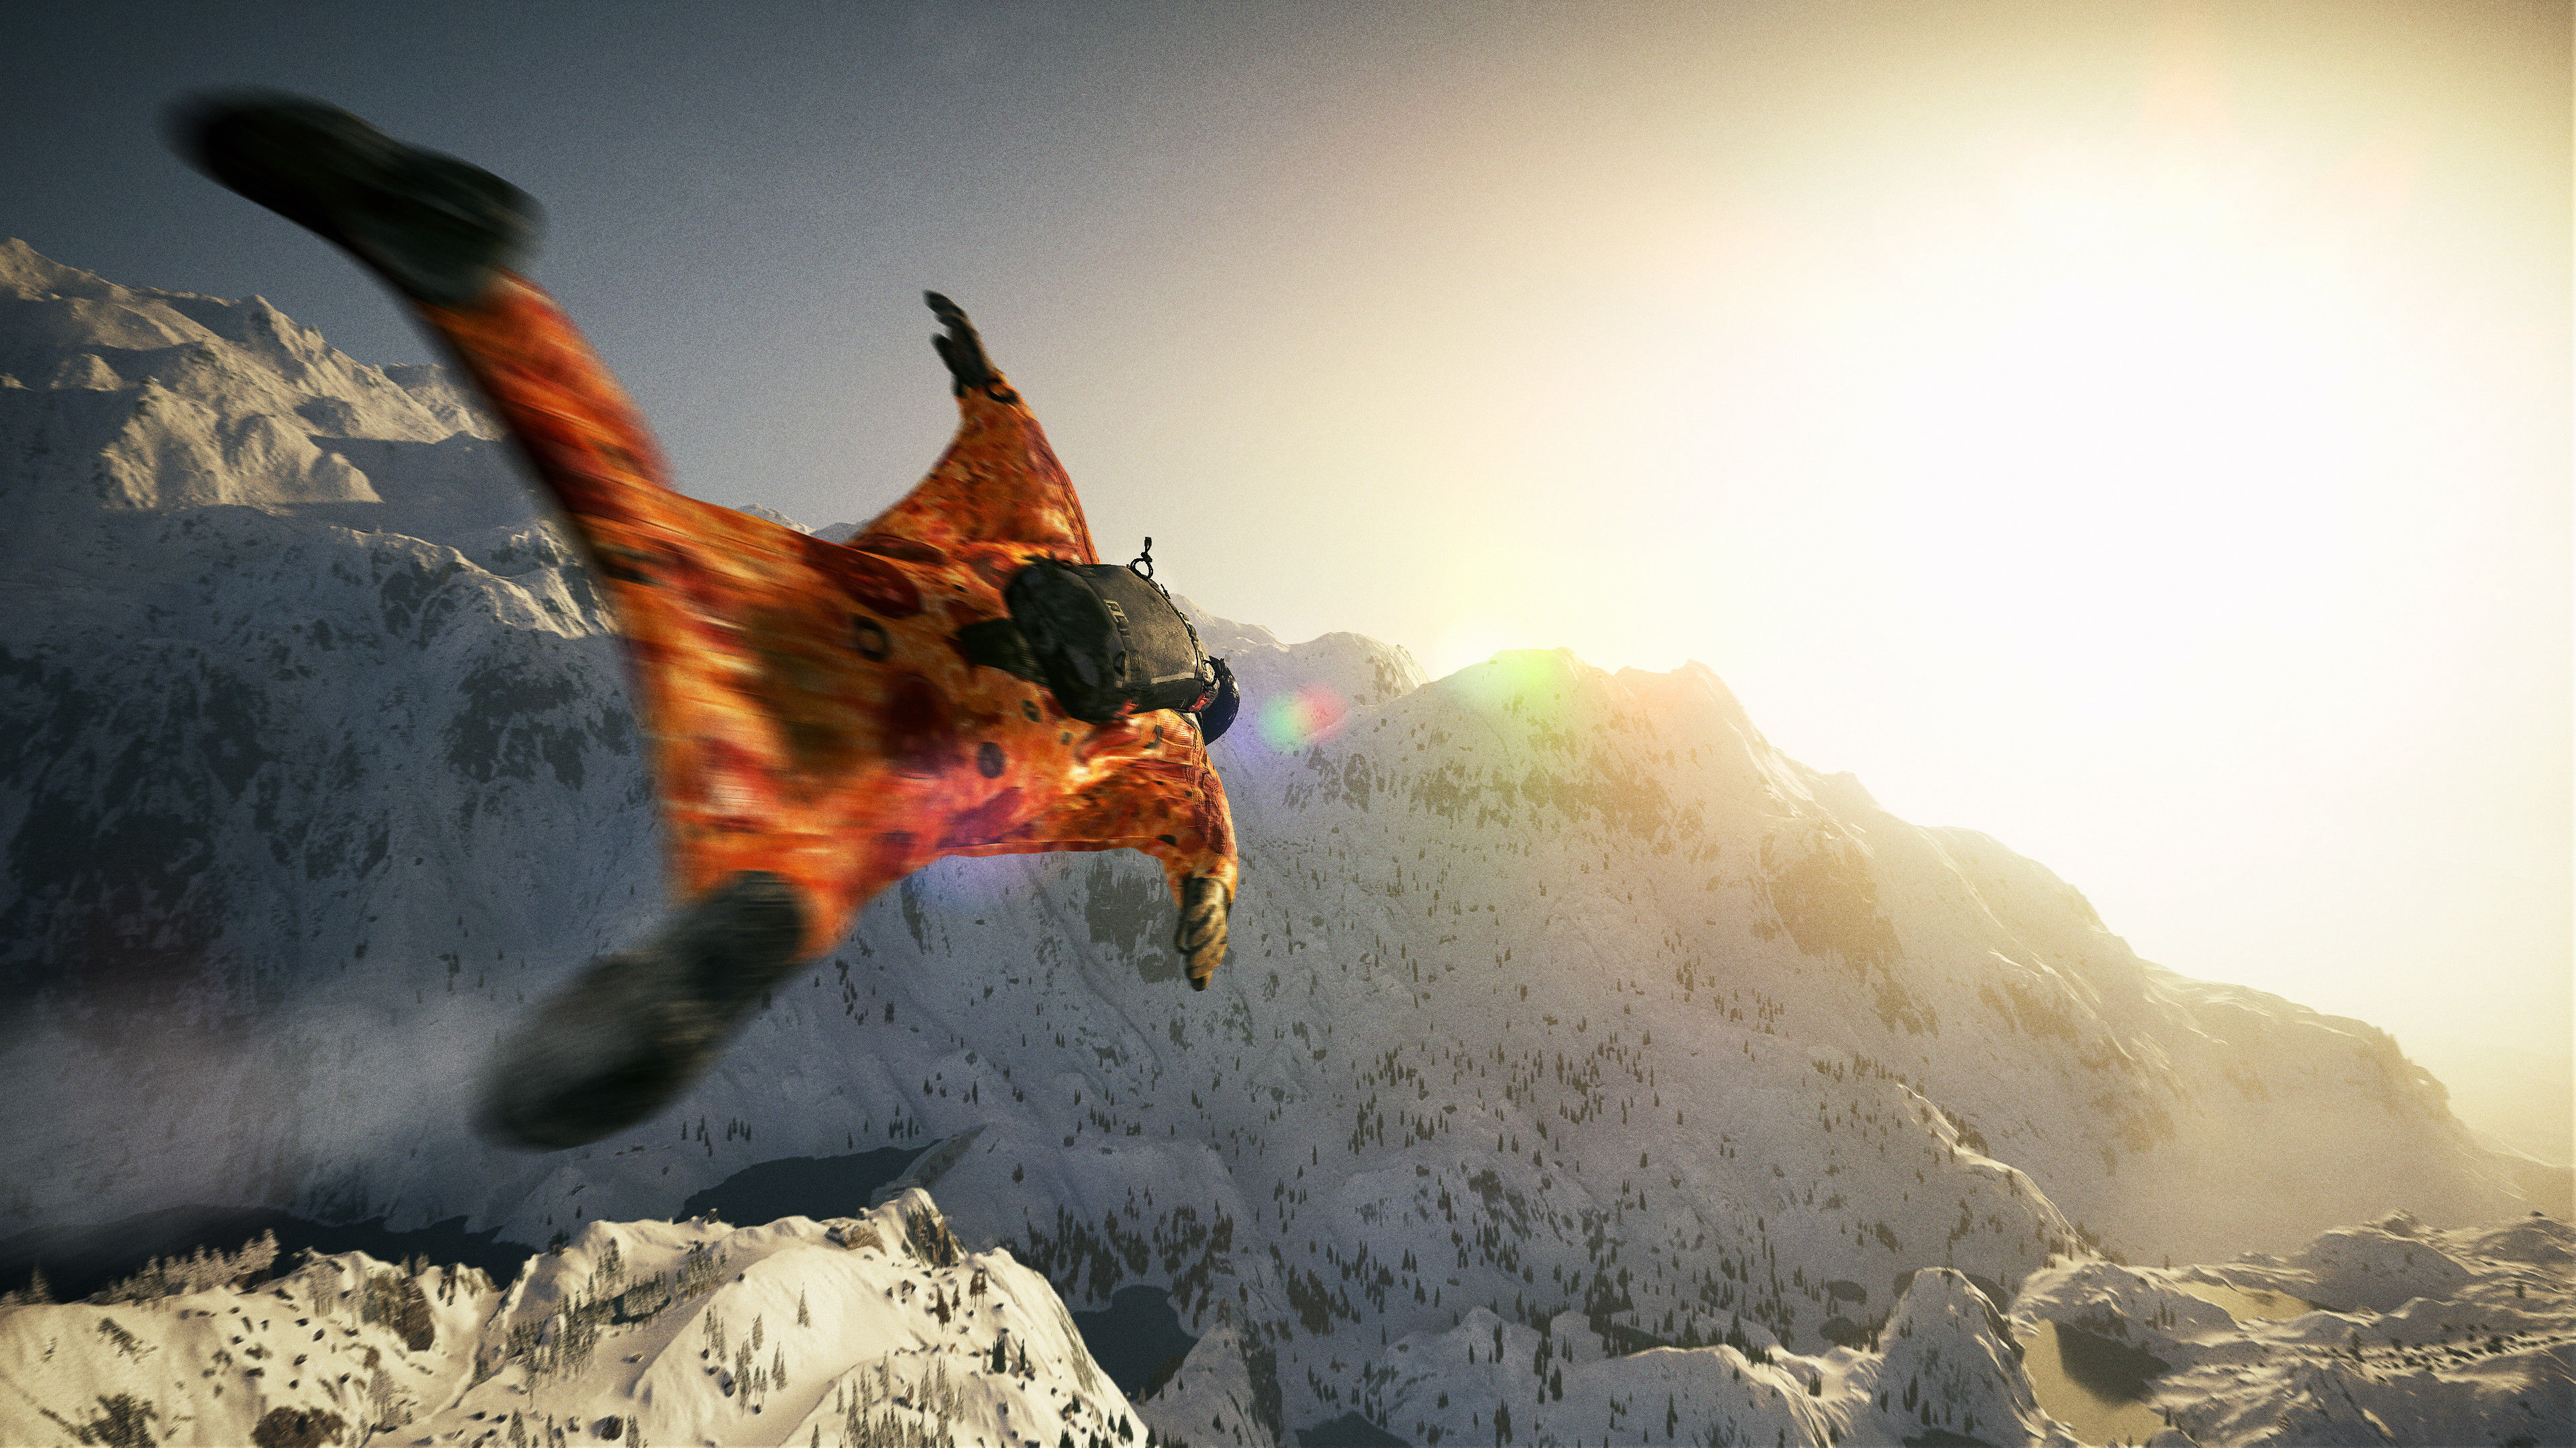 Steep Extreme Sport Game 4k Hd Desktop Wallpaper For 4k: Steep Wing Suit 4k 2017 Game, HD Games, 4k Wallpapers